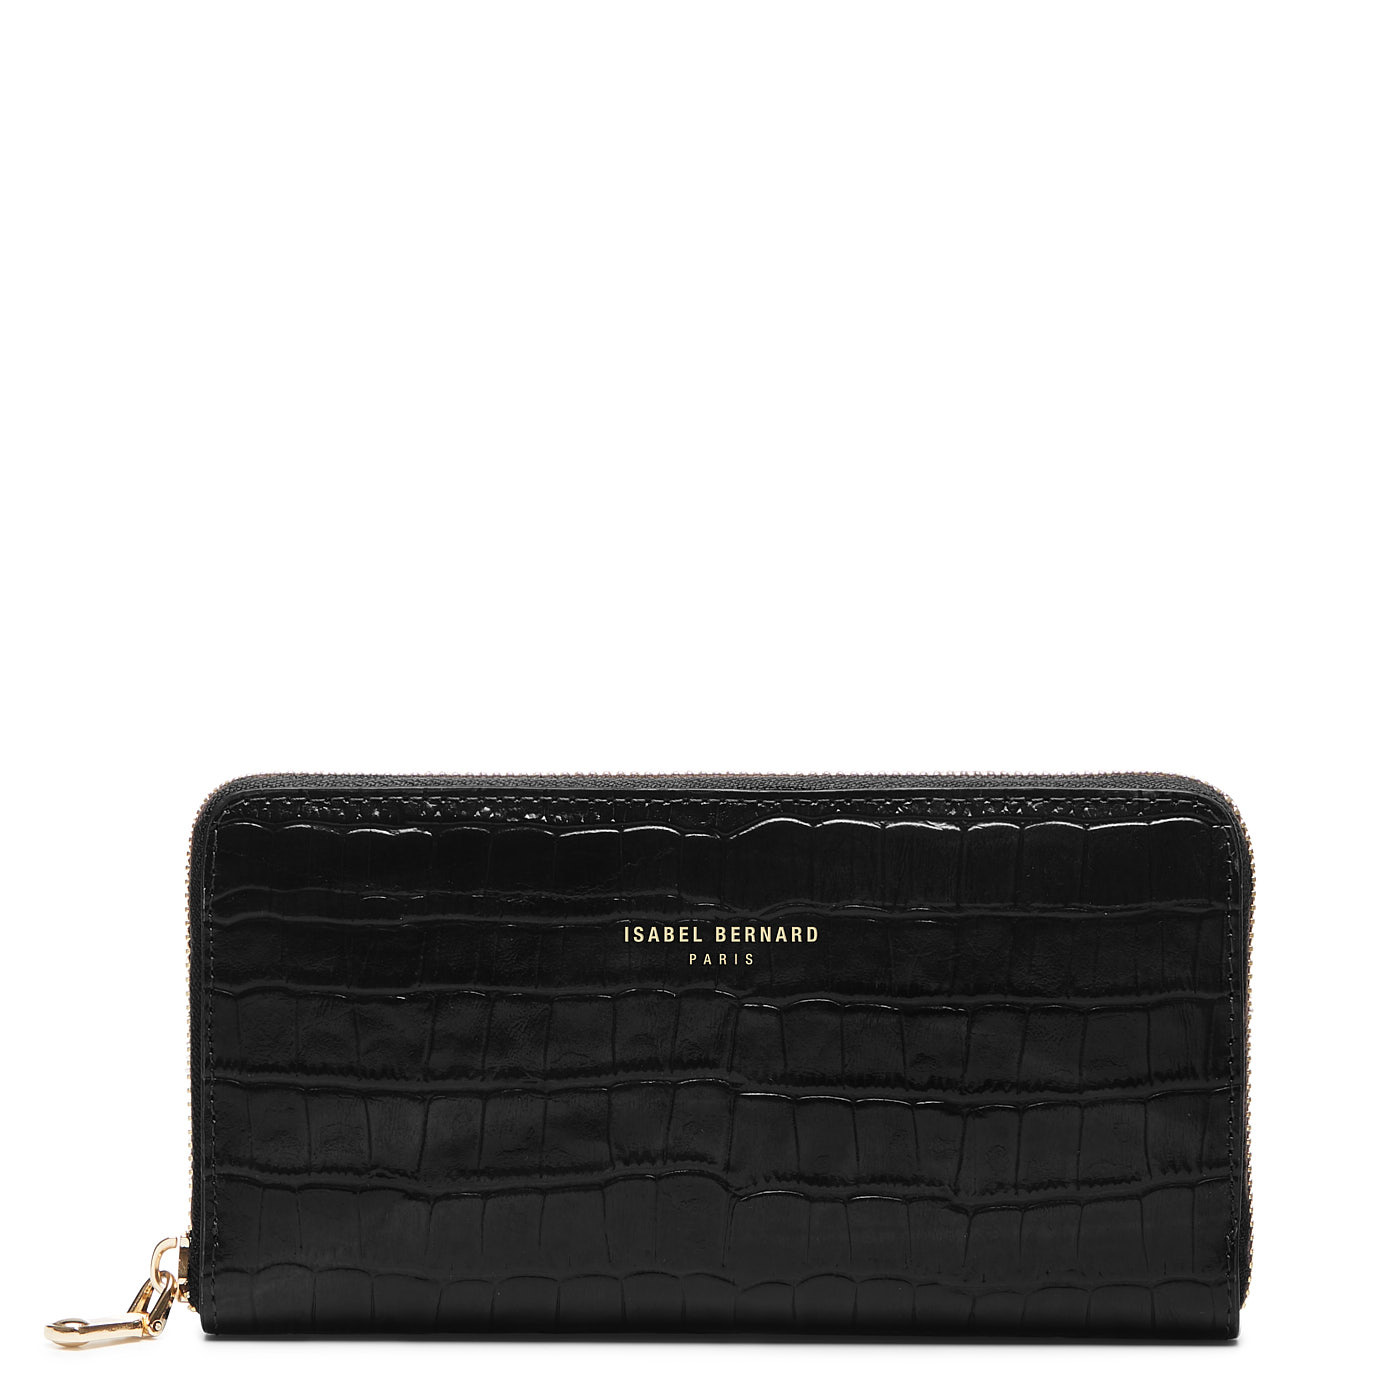 Isabel Bernard Honoré Léa croco black calfskin leather zipper wallet